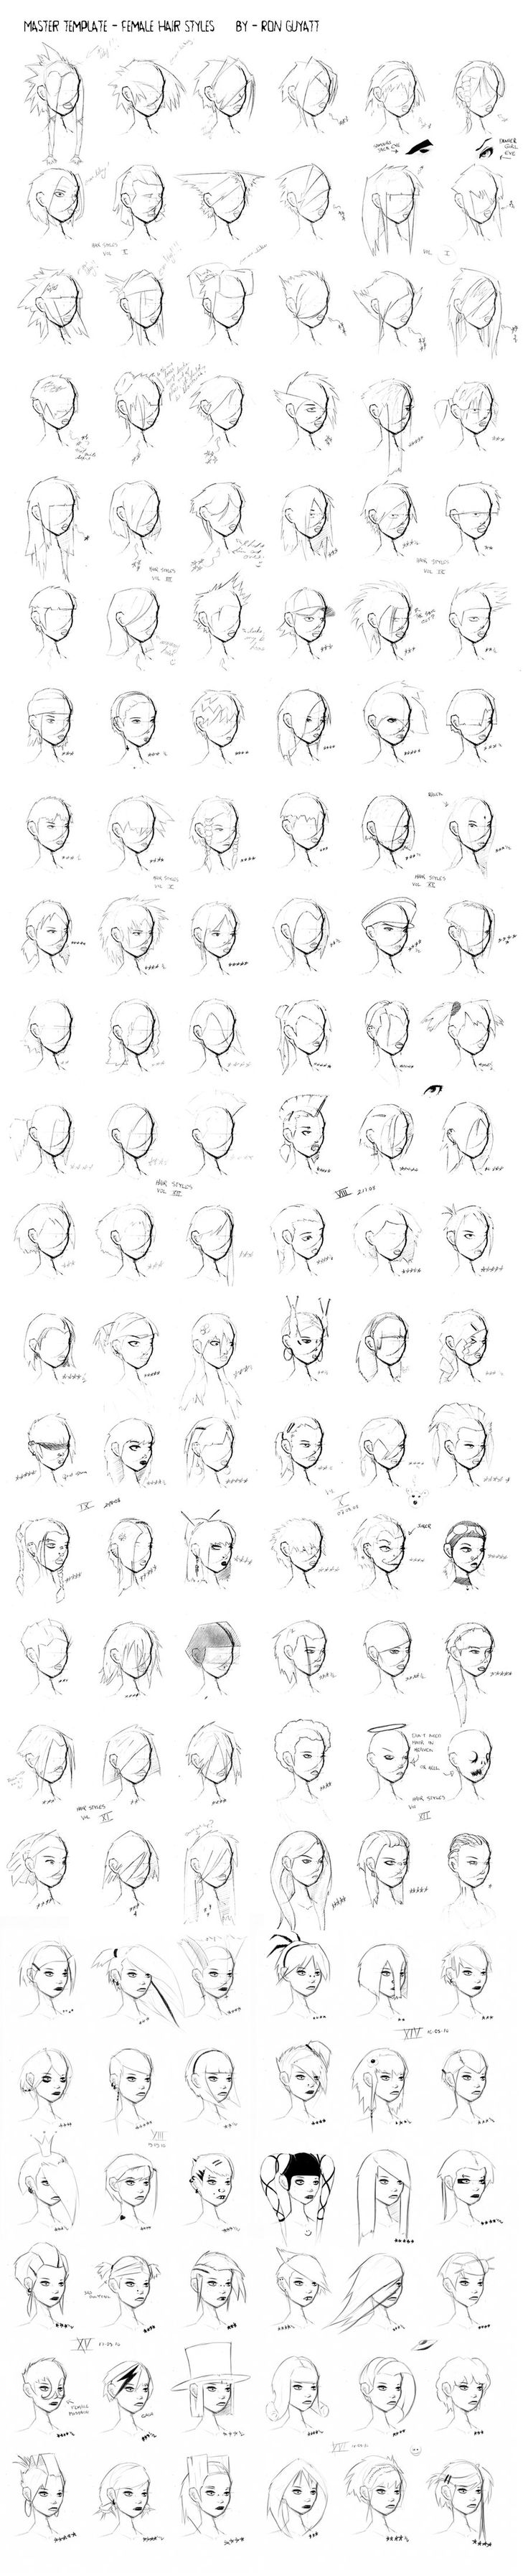 Hair Styles - Master File by =ron-guyatt (I think I saw Lady Gaga there in the middle with her antenna extended)